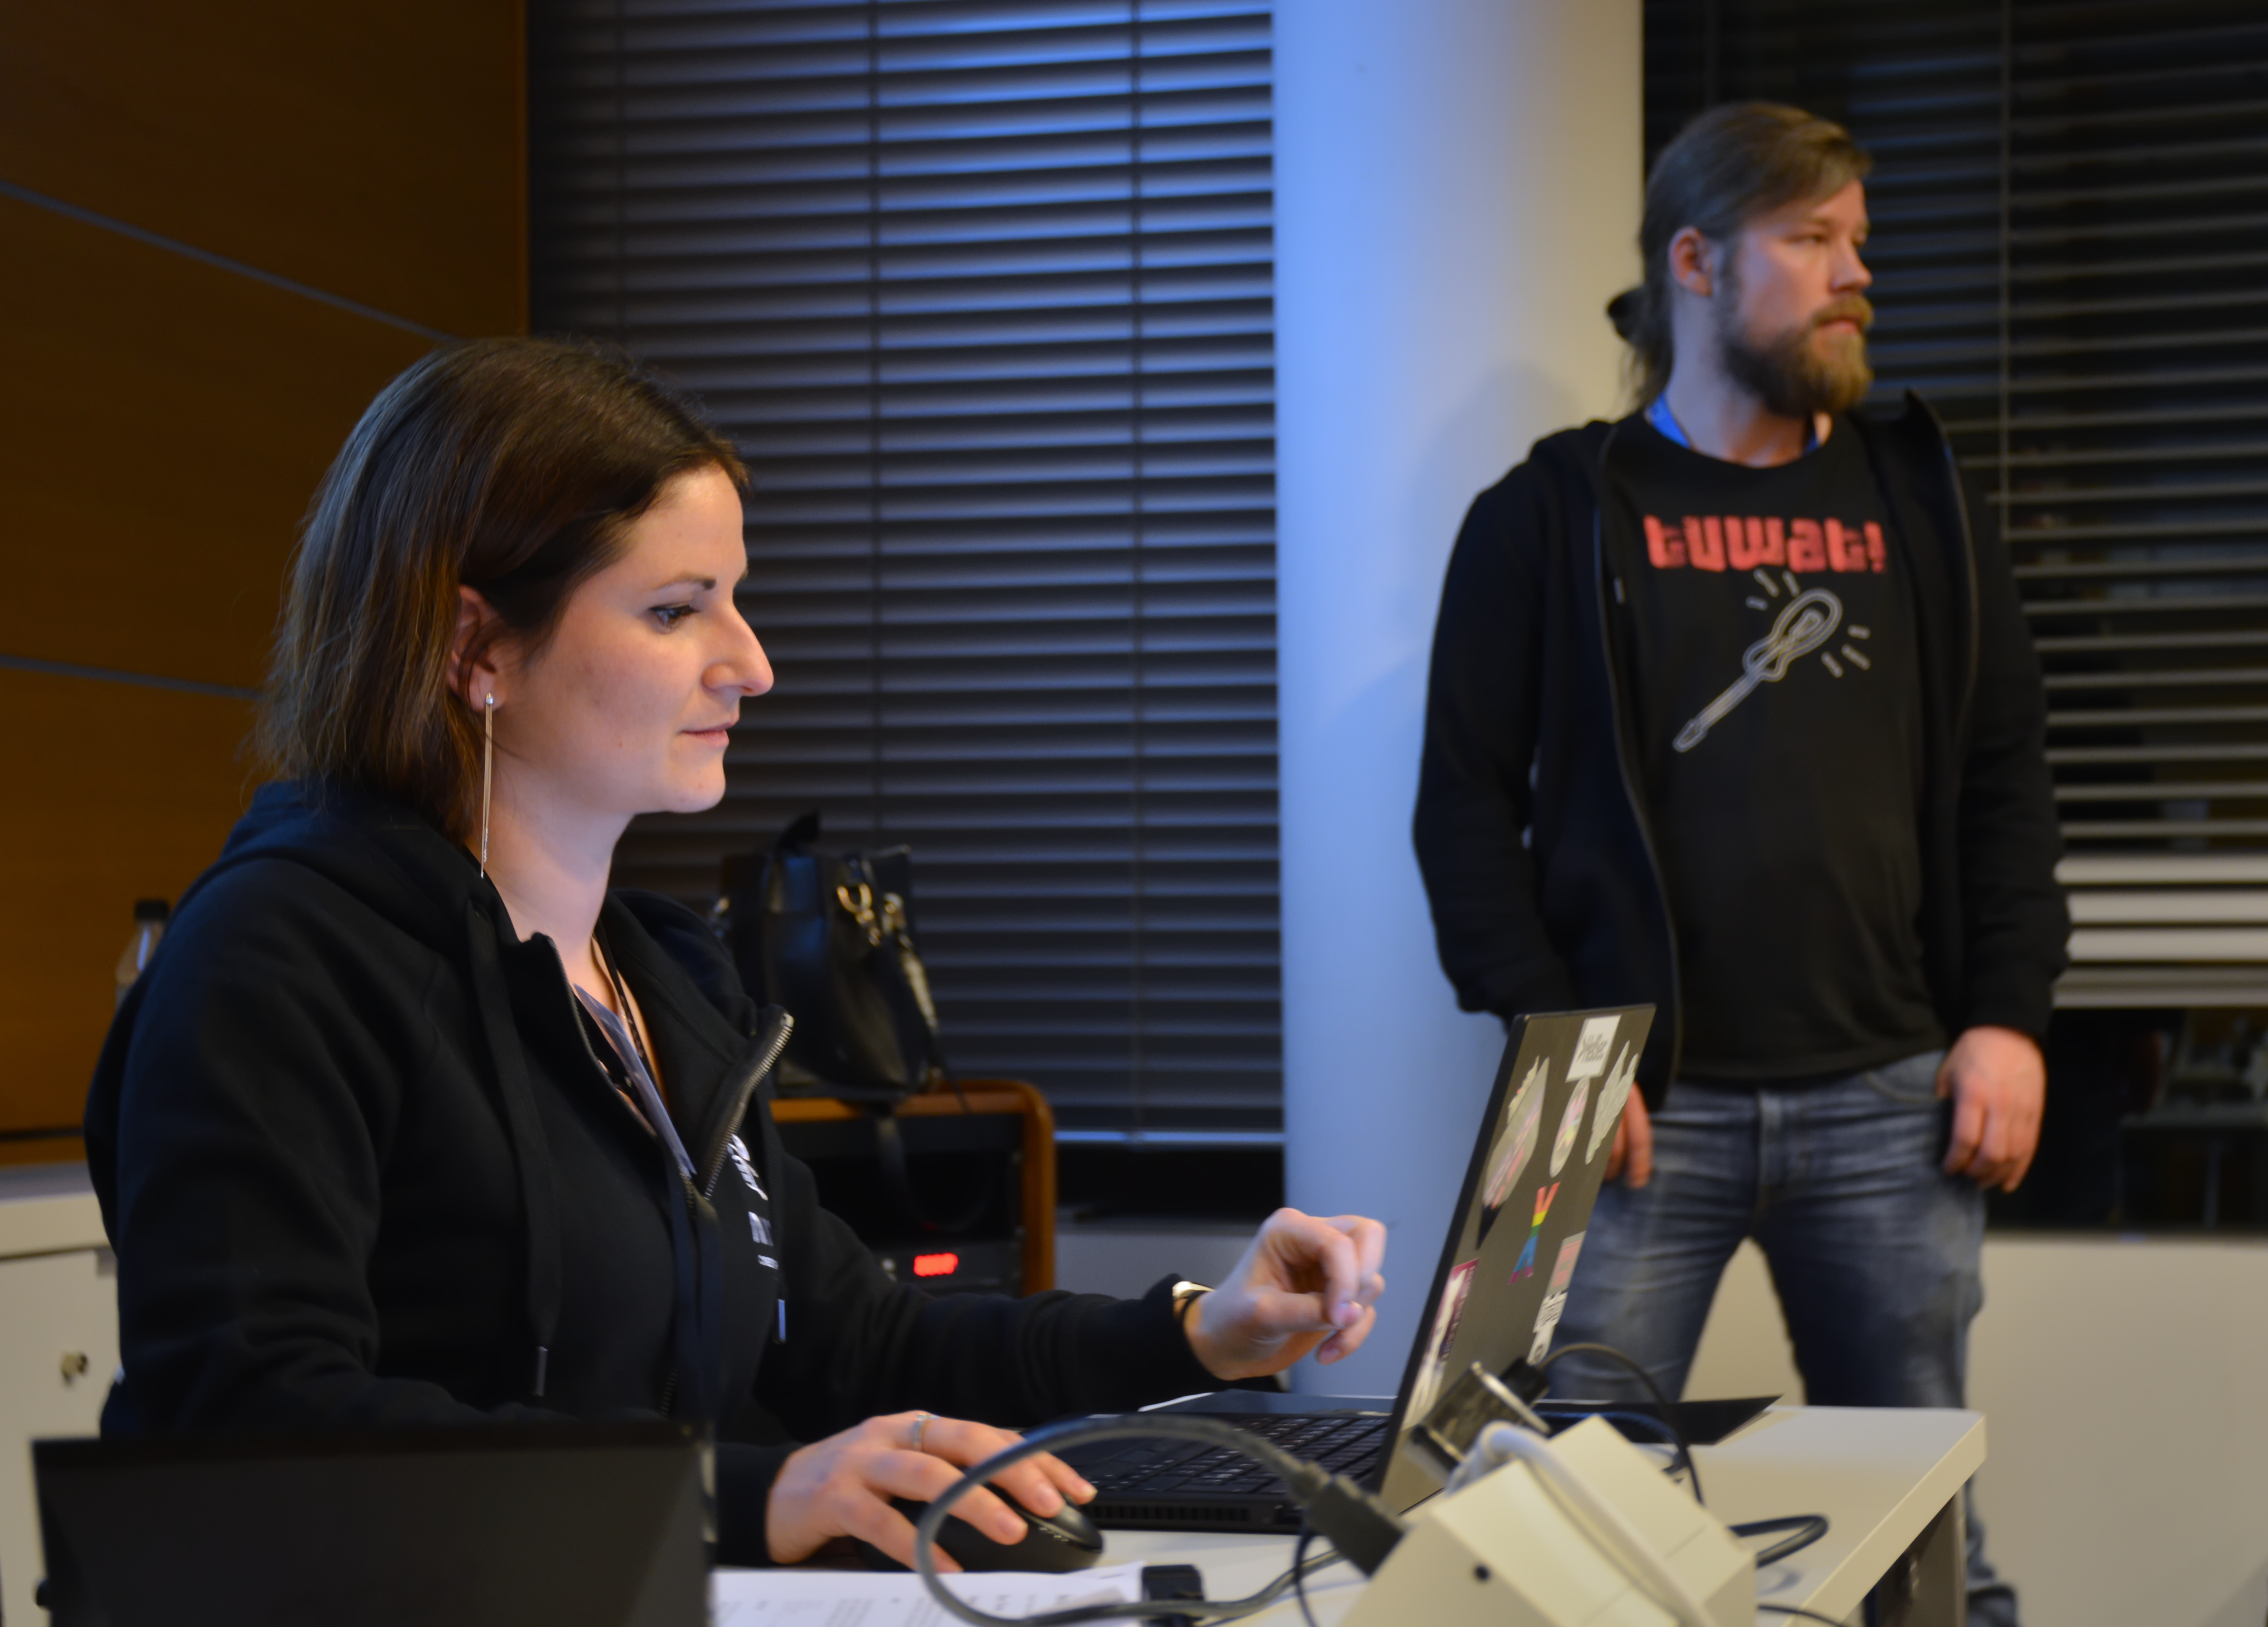 Flavia and Antti are demonstrating Splunk usage for the participants